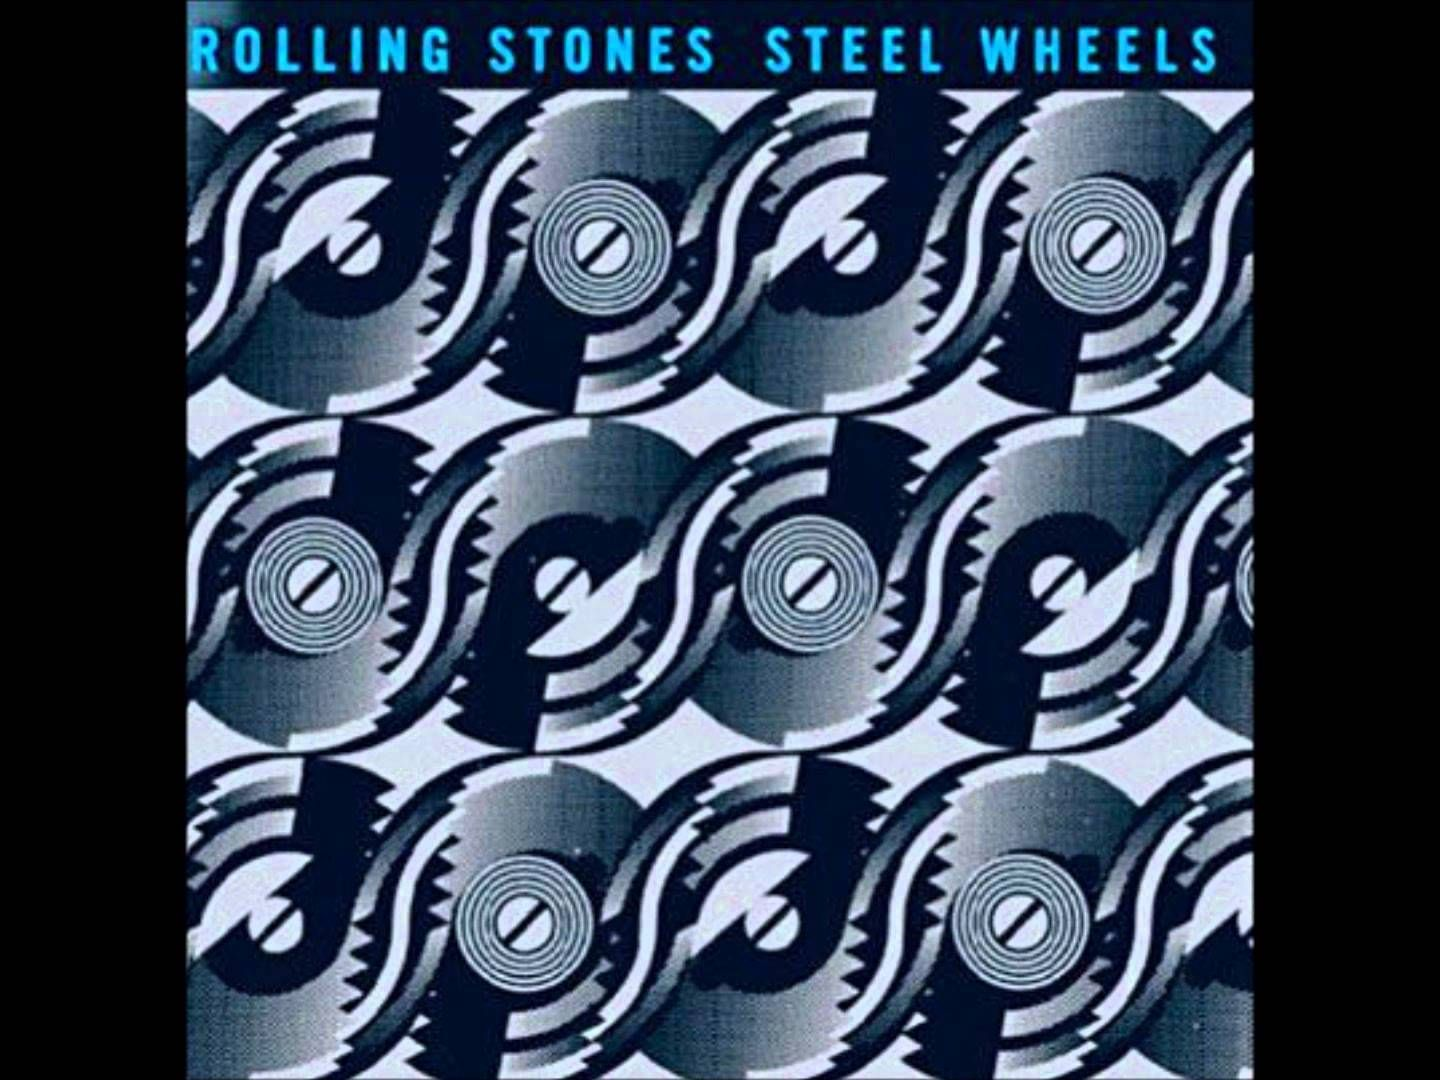 Pin By Mary Mary S Market On Stones Rolling Stones Albums Rolling Stones Album Covers Steel Wheels